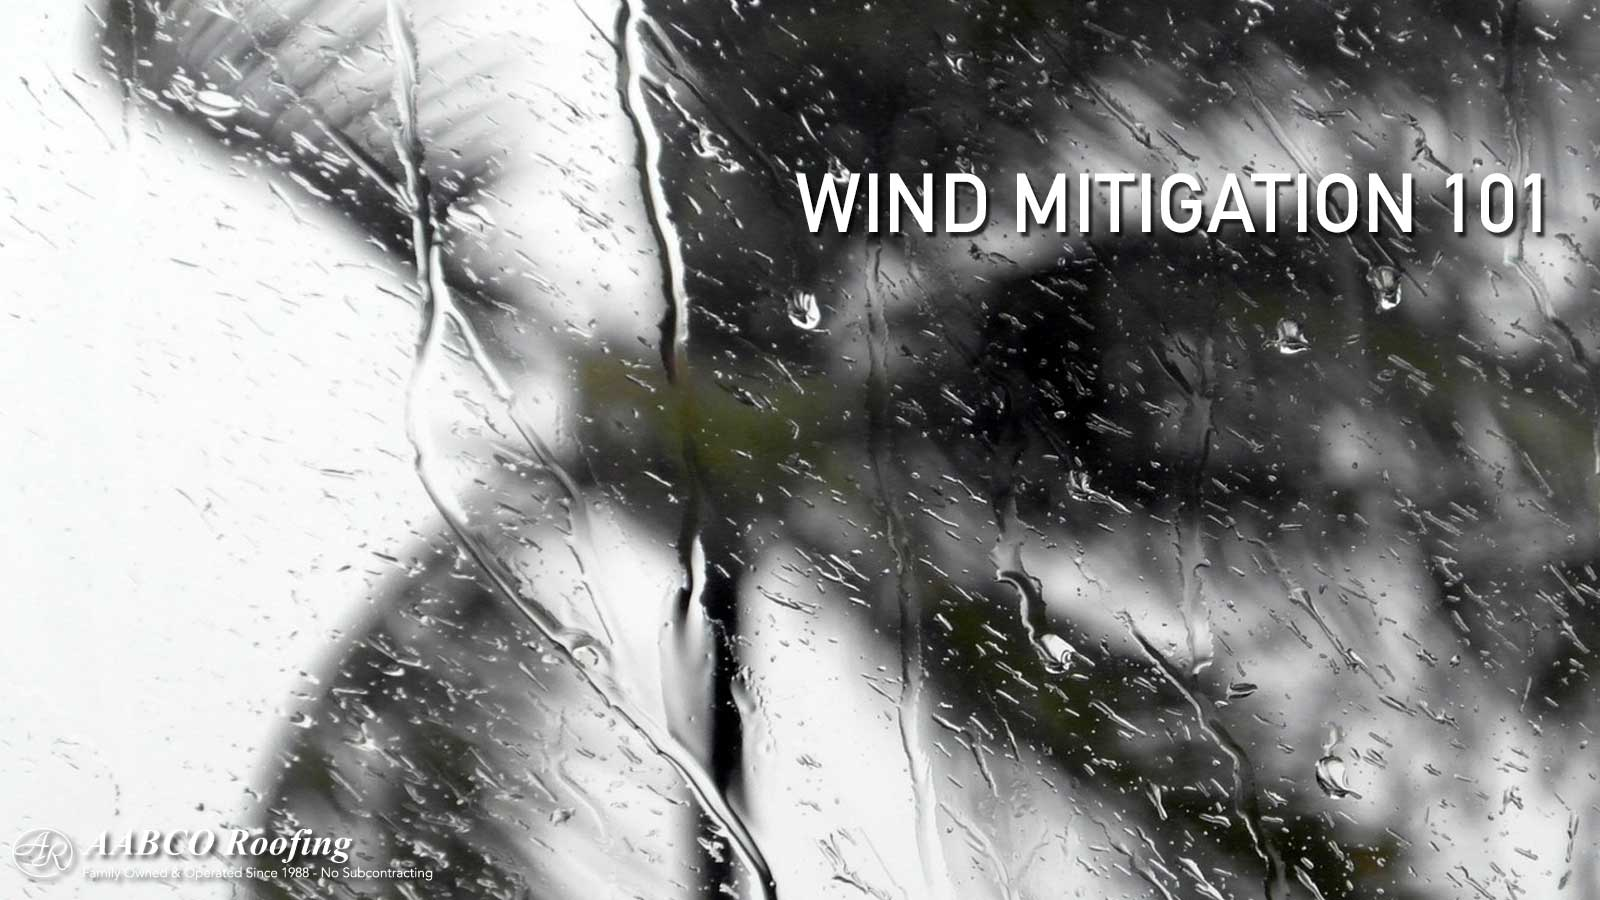 Wind Mitigation 101